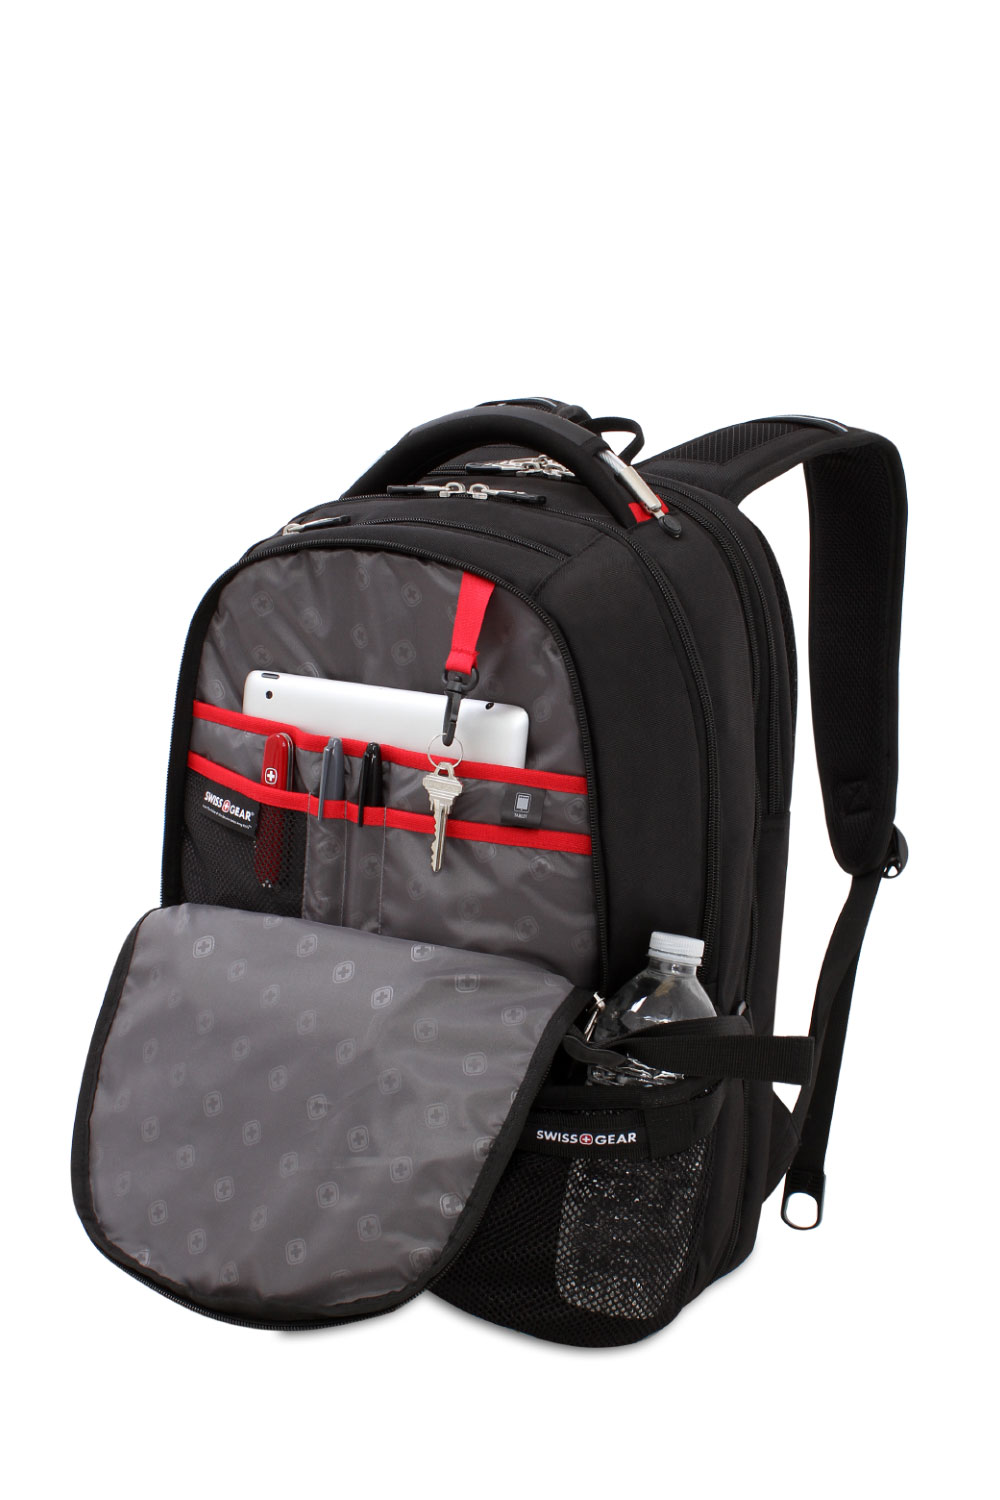 Swiss Gear Backpack Website Crazy Backpacks